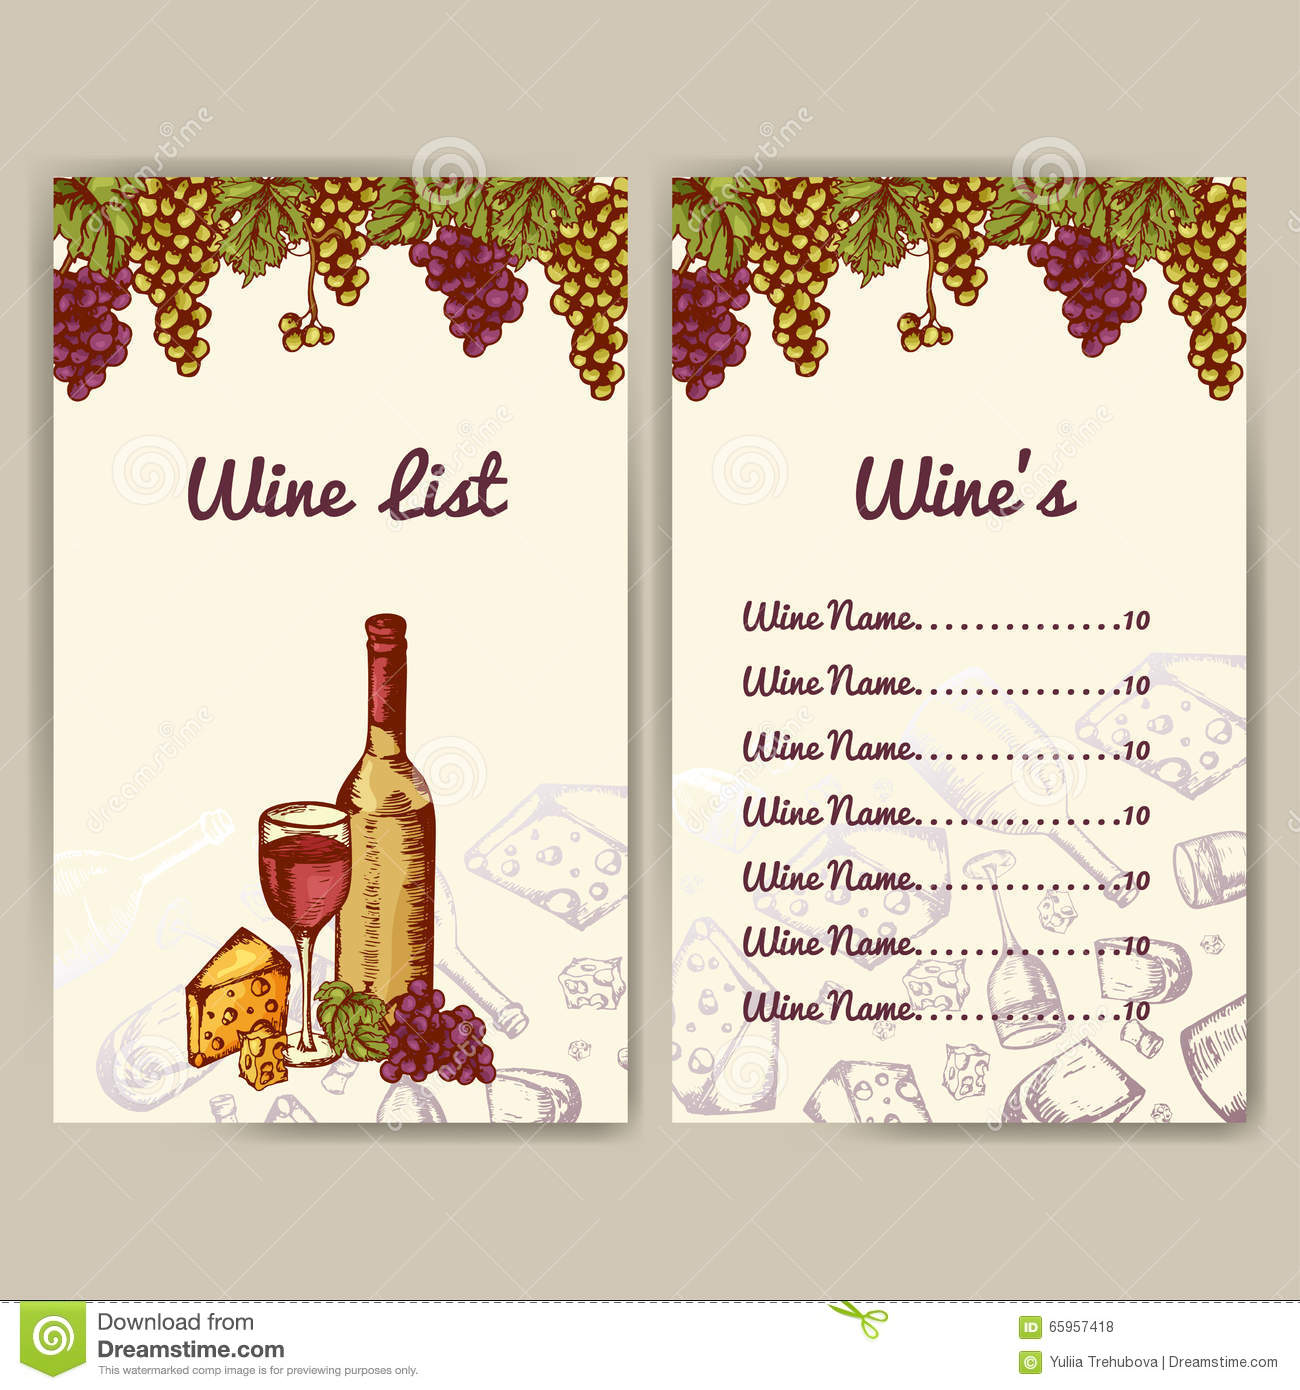 Design For Wine List. Restaurant Template For Invitation, Menu, Banner Or  Etc. Wine Concept Design. Vector Illustration  Free Wine List Template